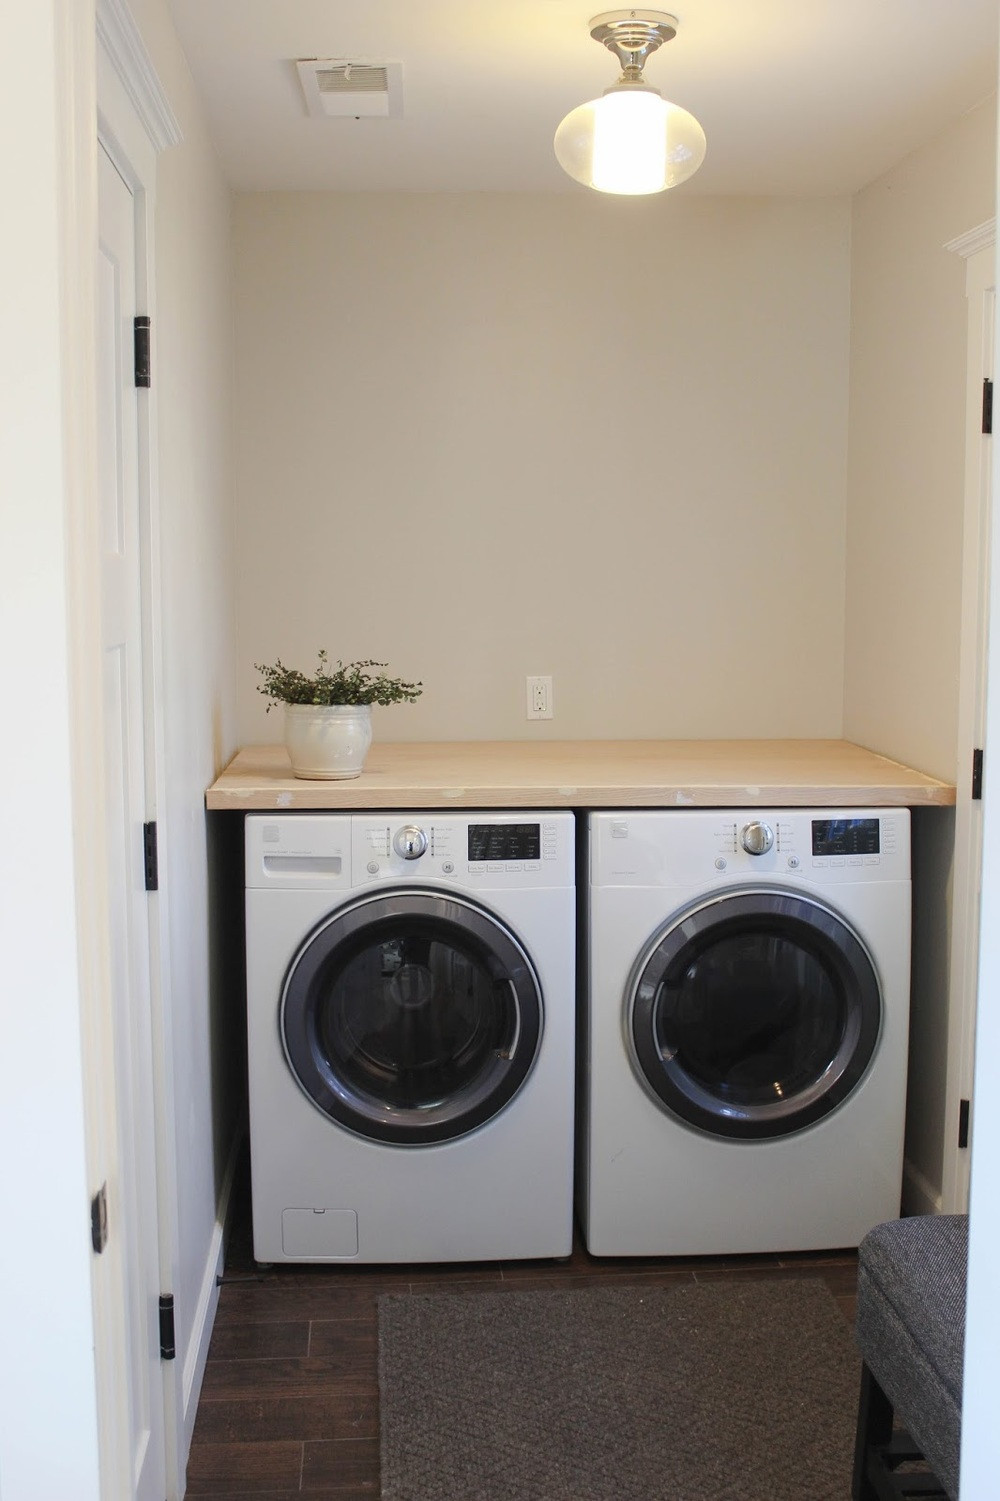 Best ideas about Laundry Room Countertop . Save or Pin DIY Laundry Room Countertop — Katrina Blair Now.